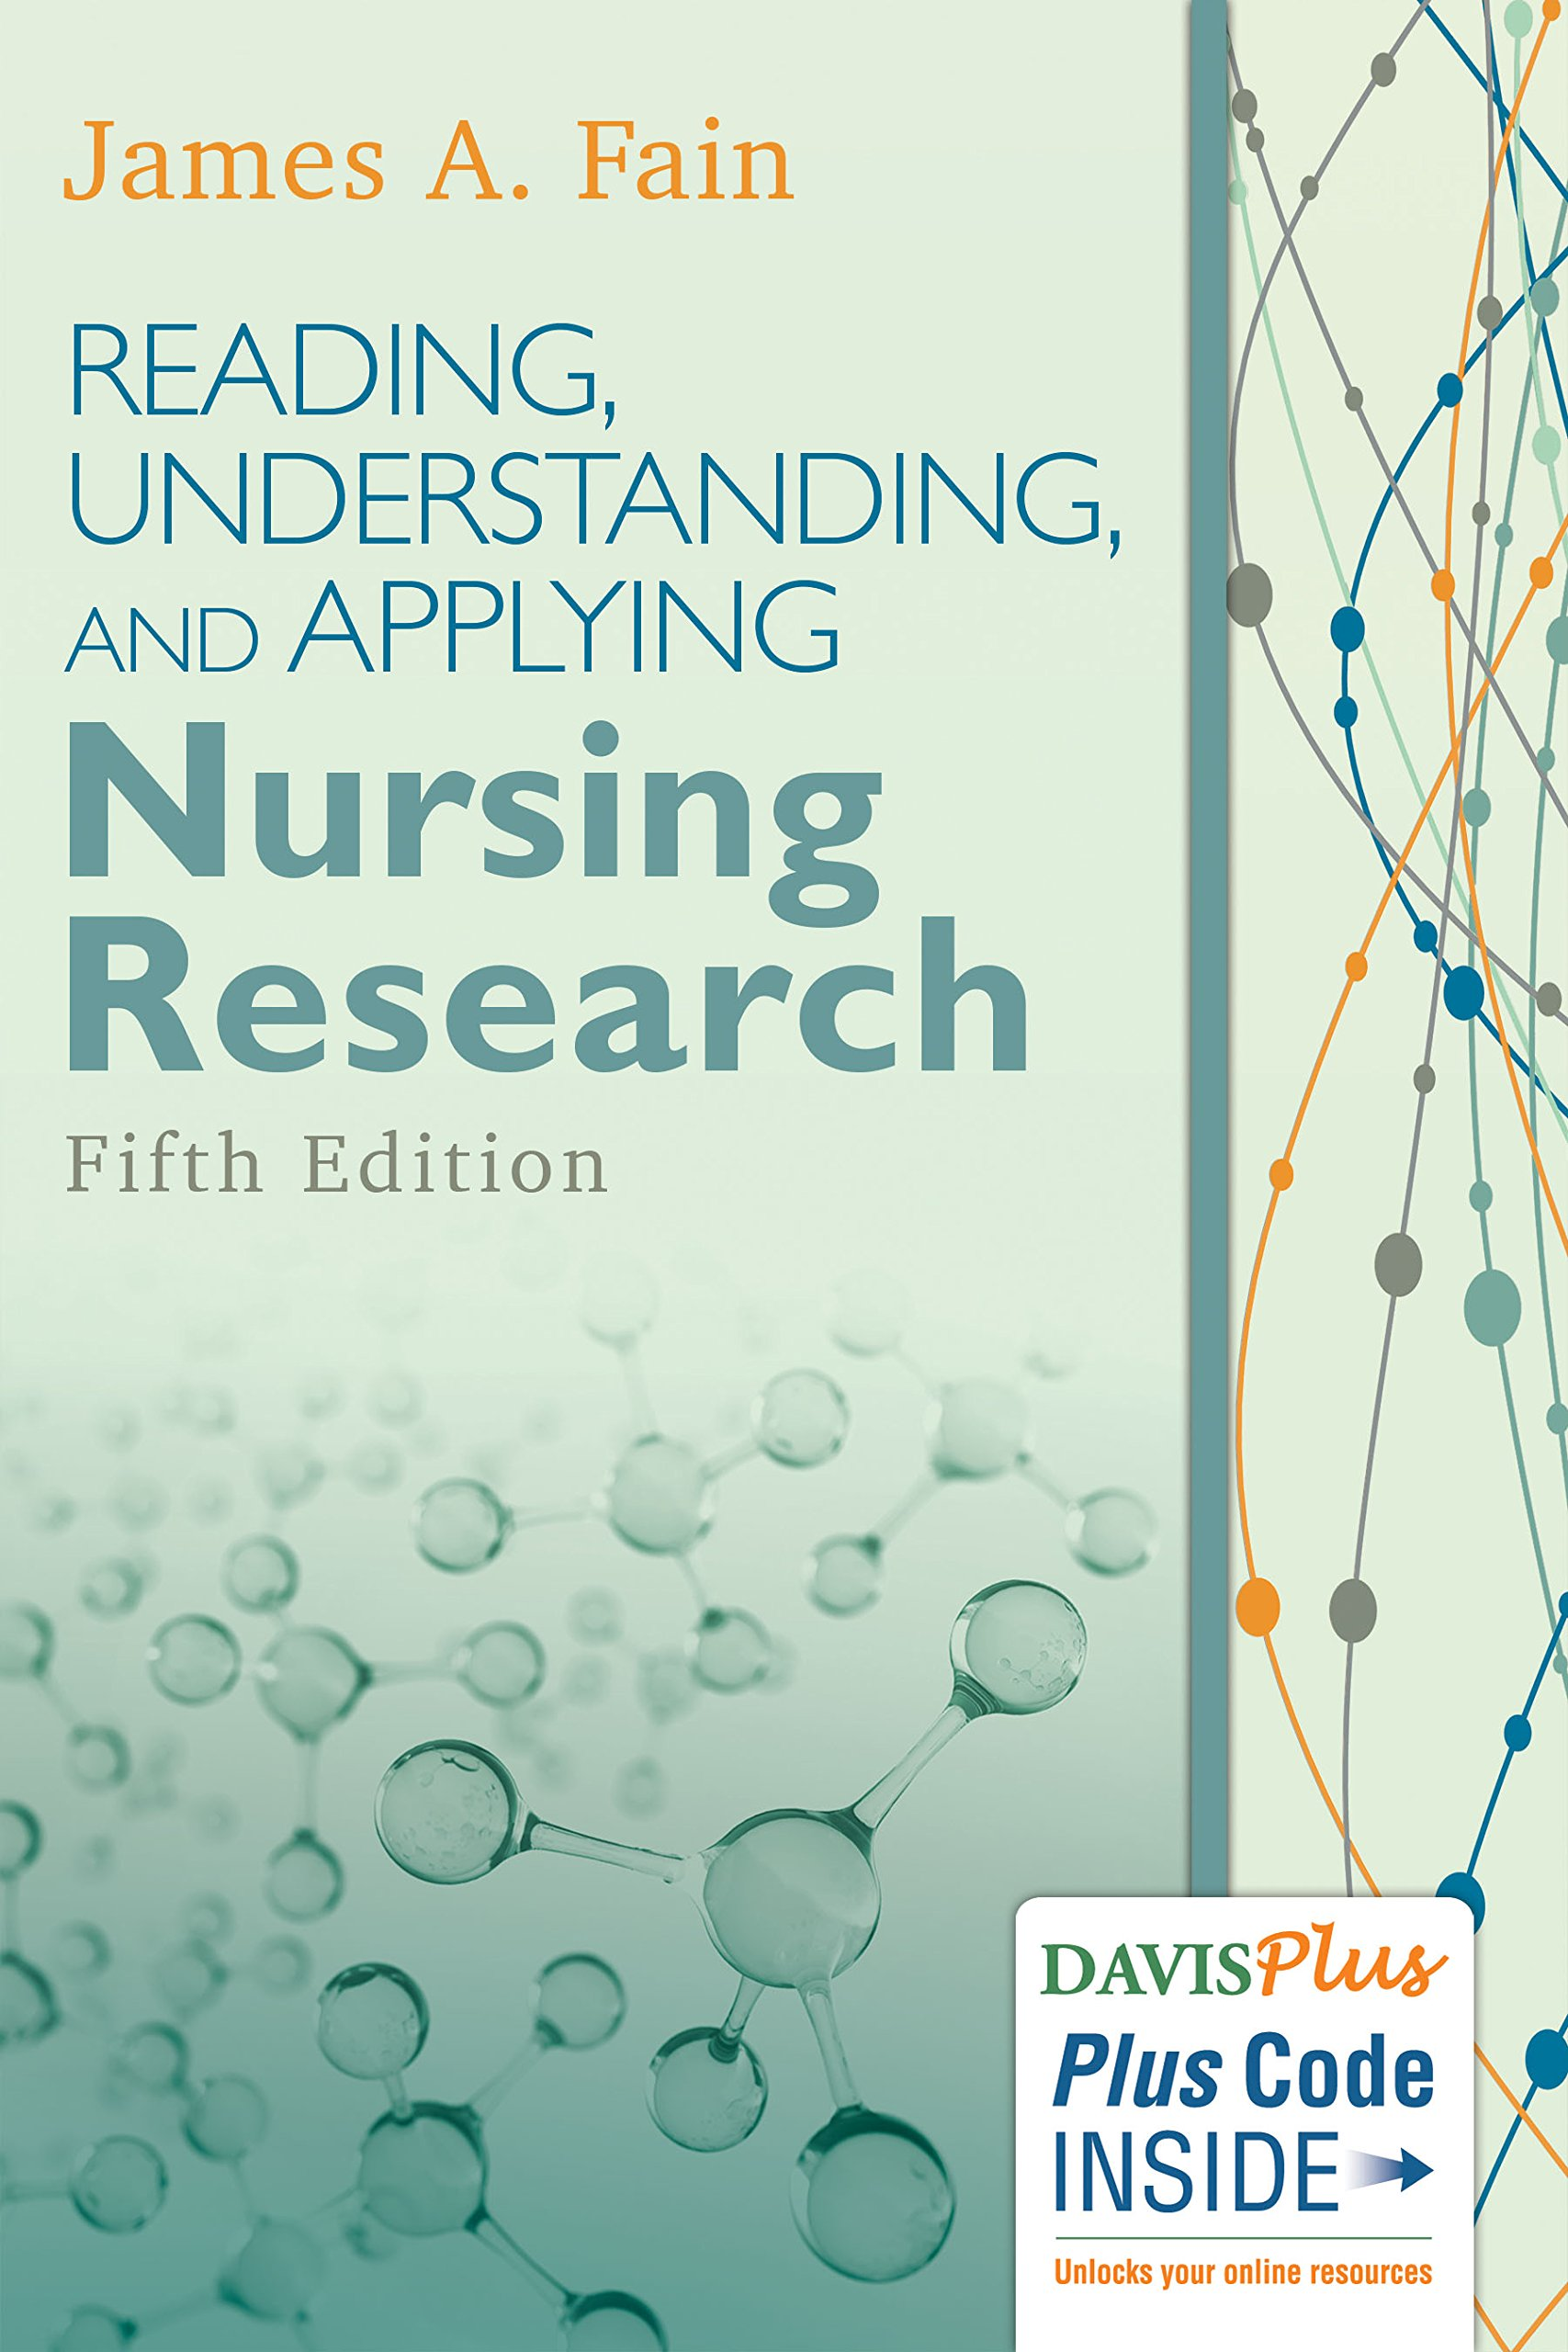 Reading, Understanding, and Applying Nursing Research by Fain James A